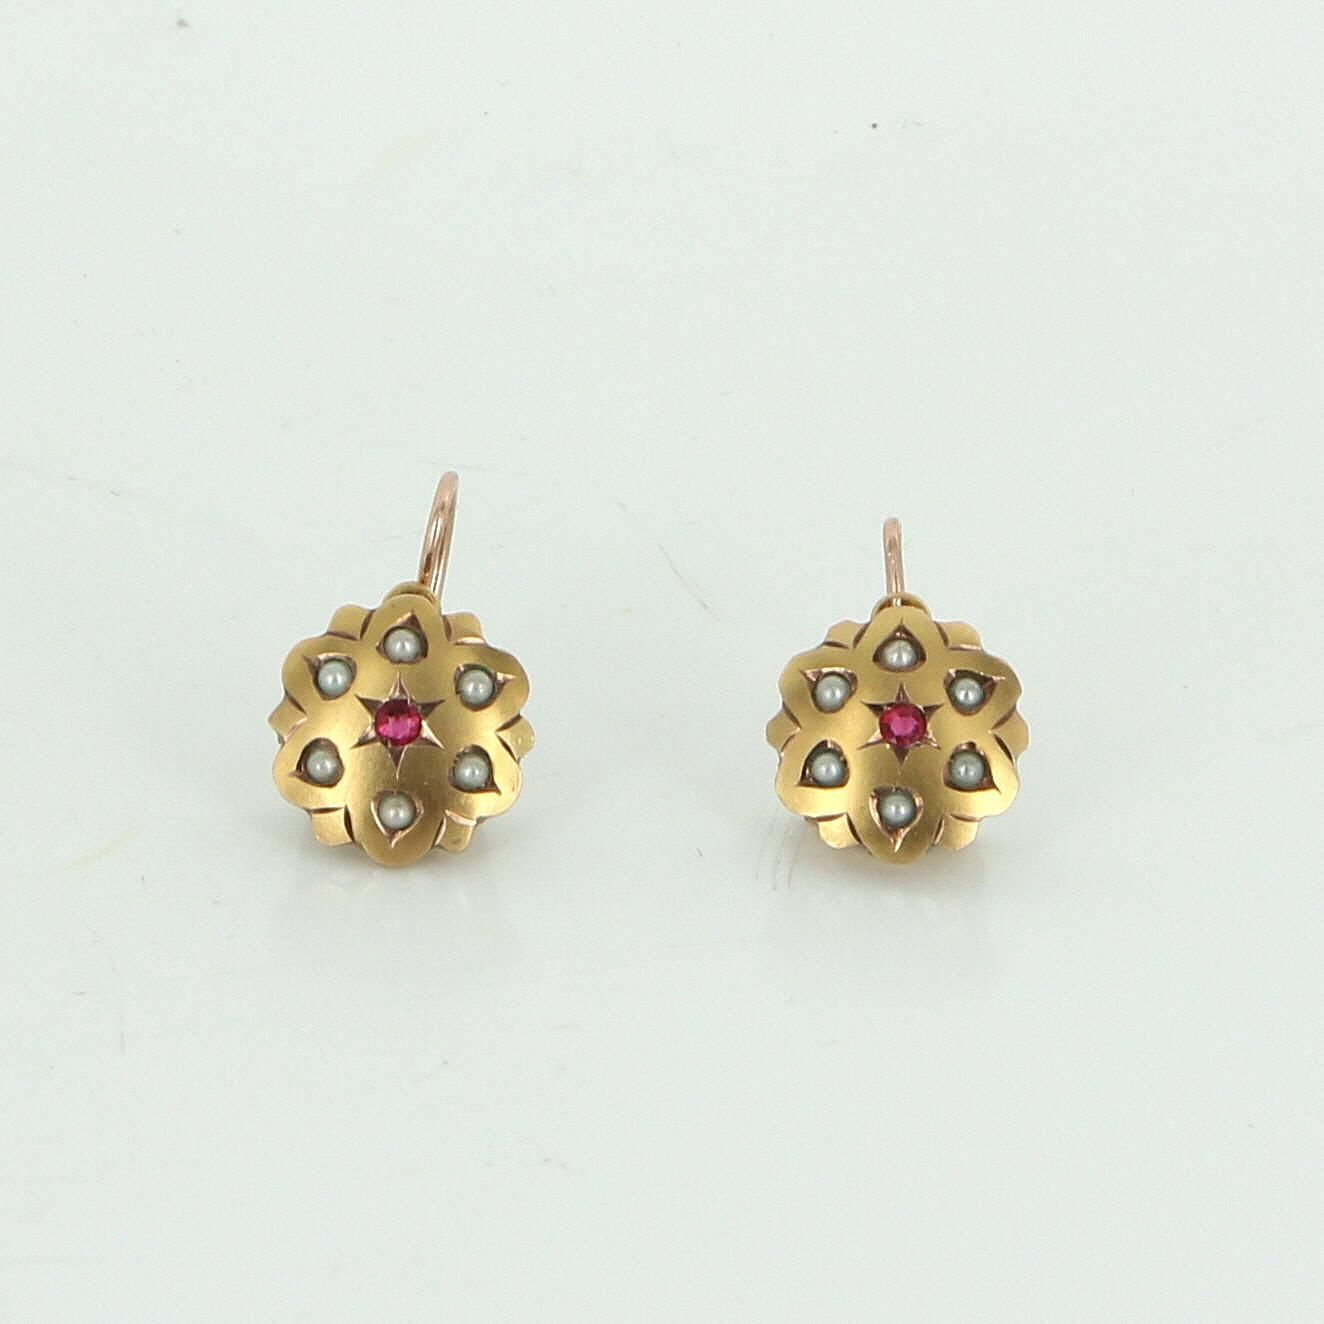 earrings glorious antique fetheray dangle victorian drop pinchbeck ornamental products gold